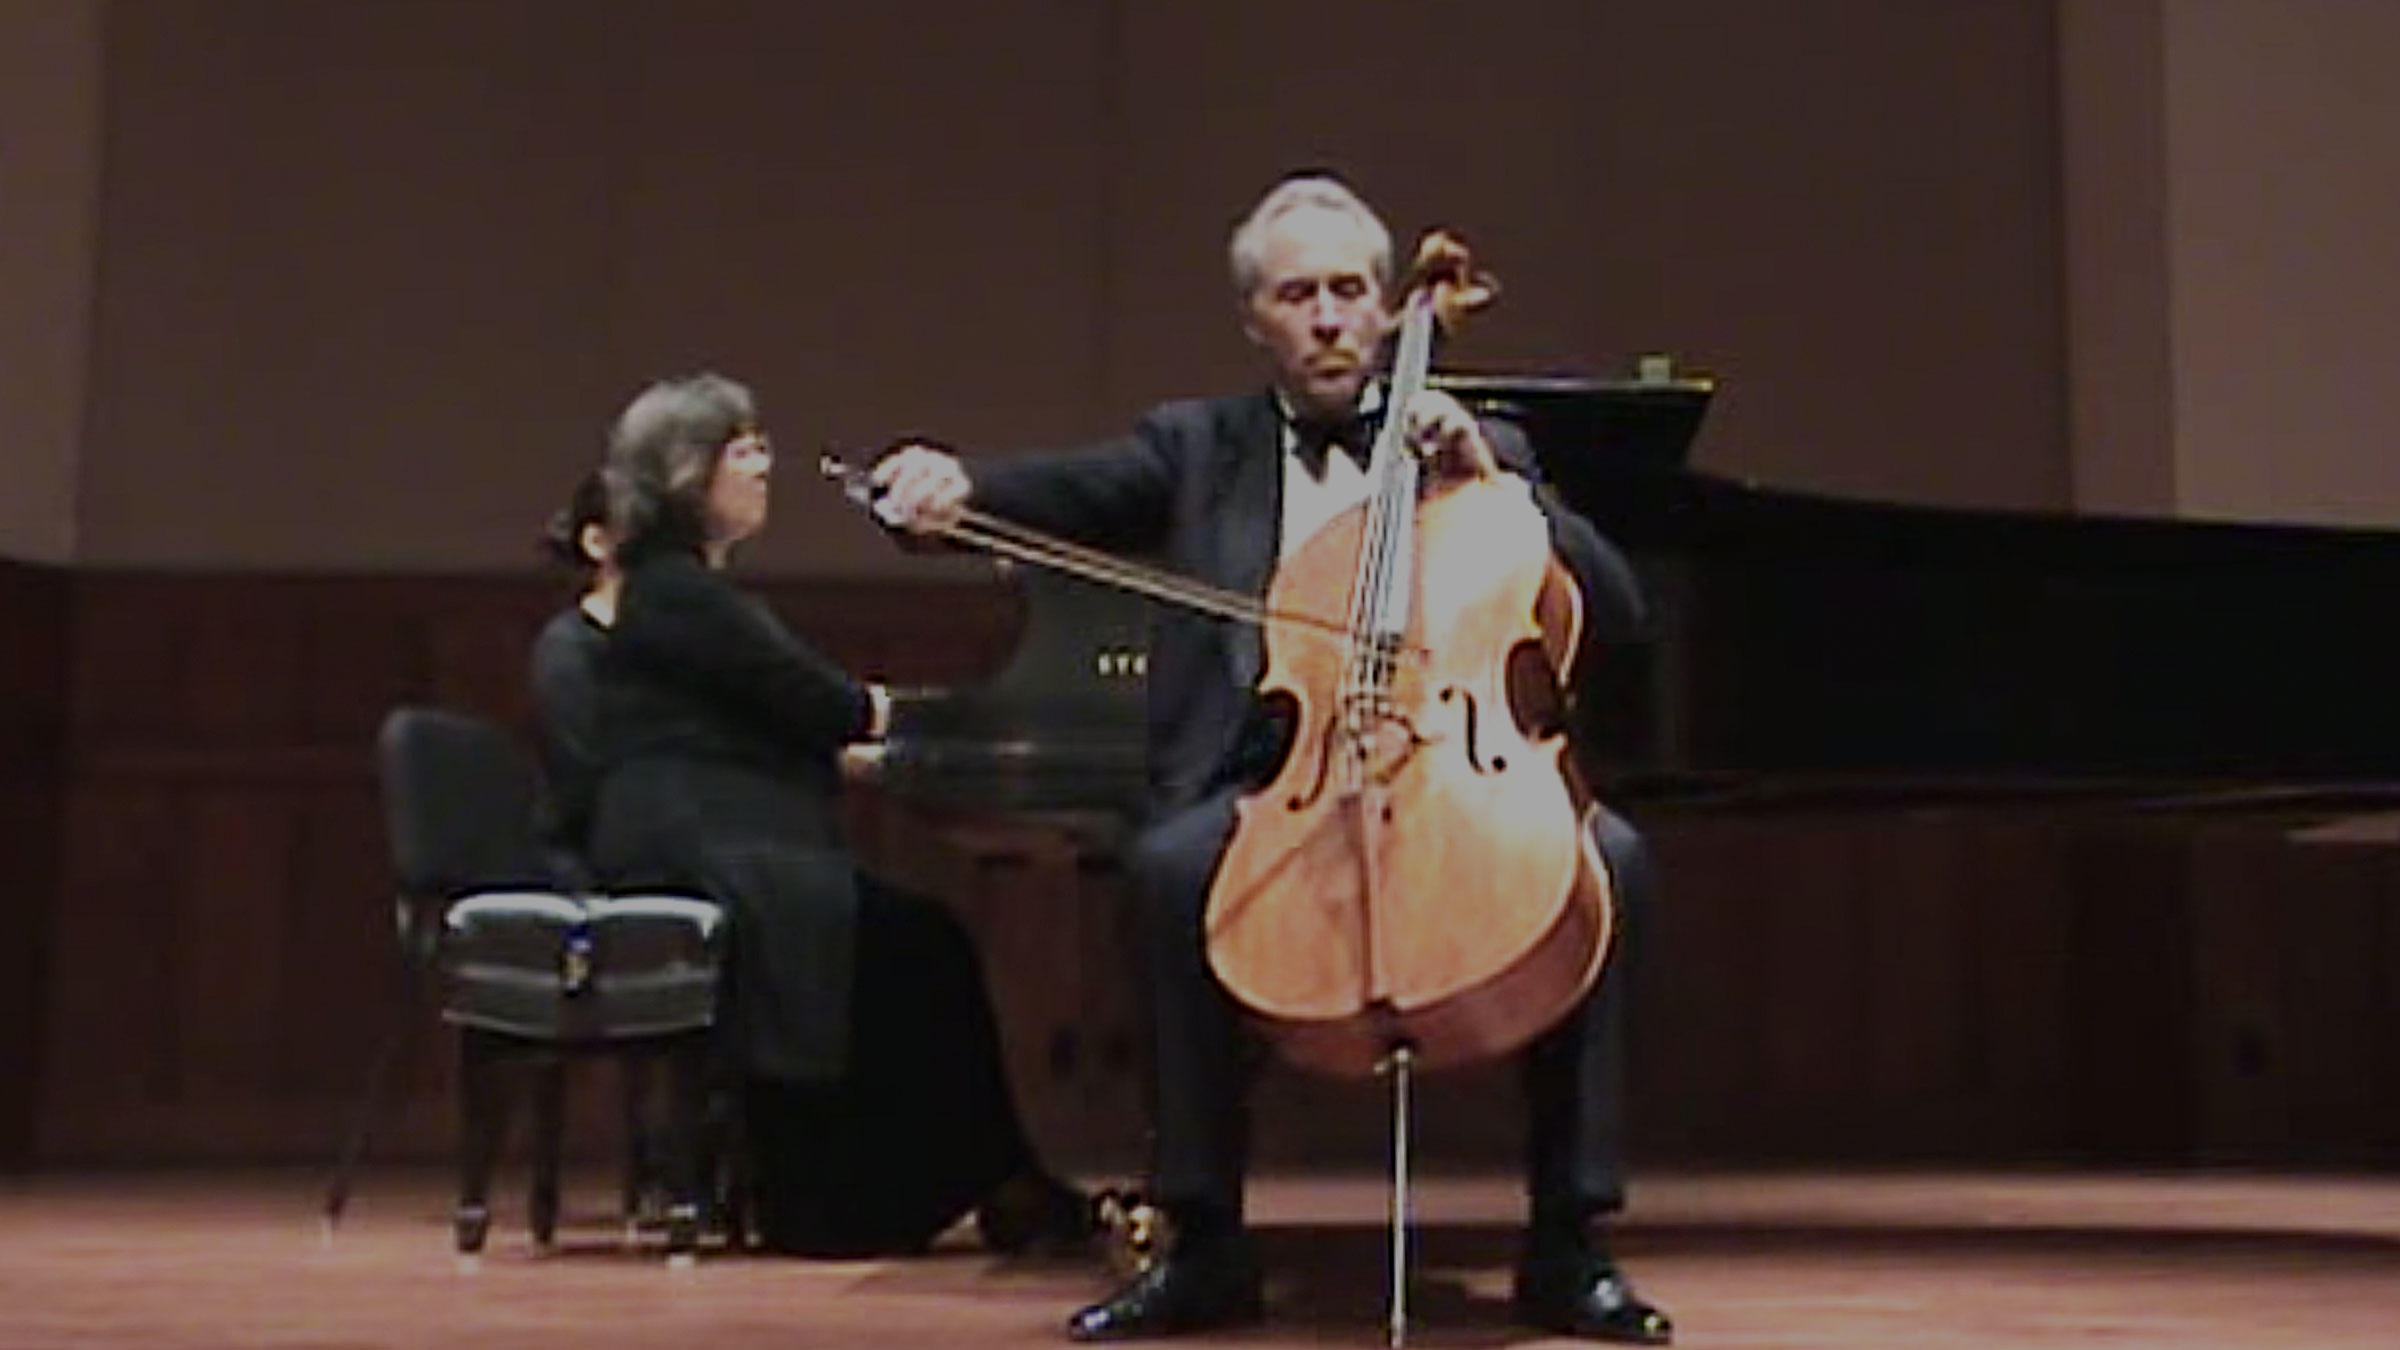 Cellist Nathaniel Rosen Plays Chopin Nocturne